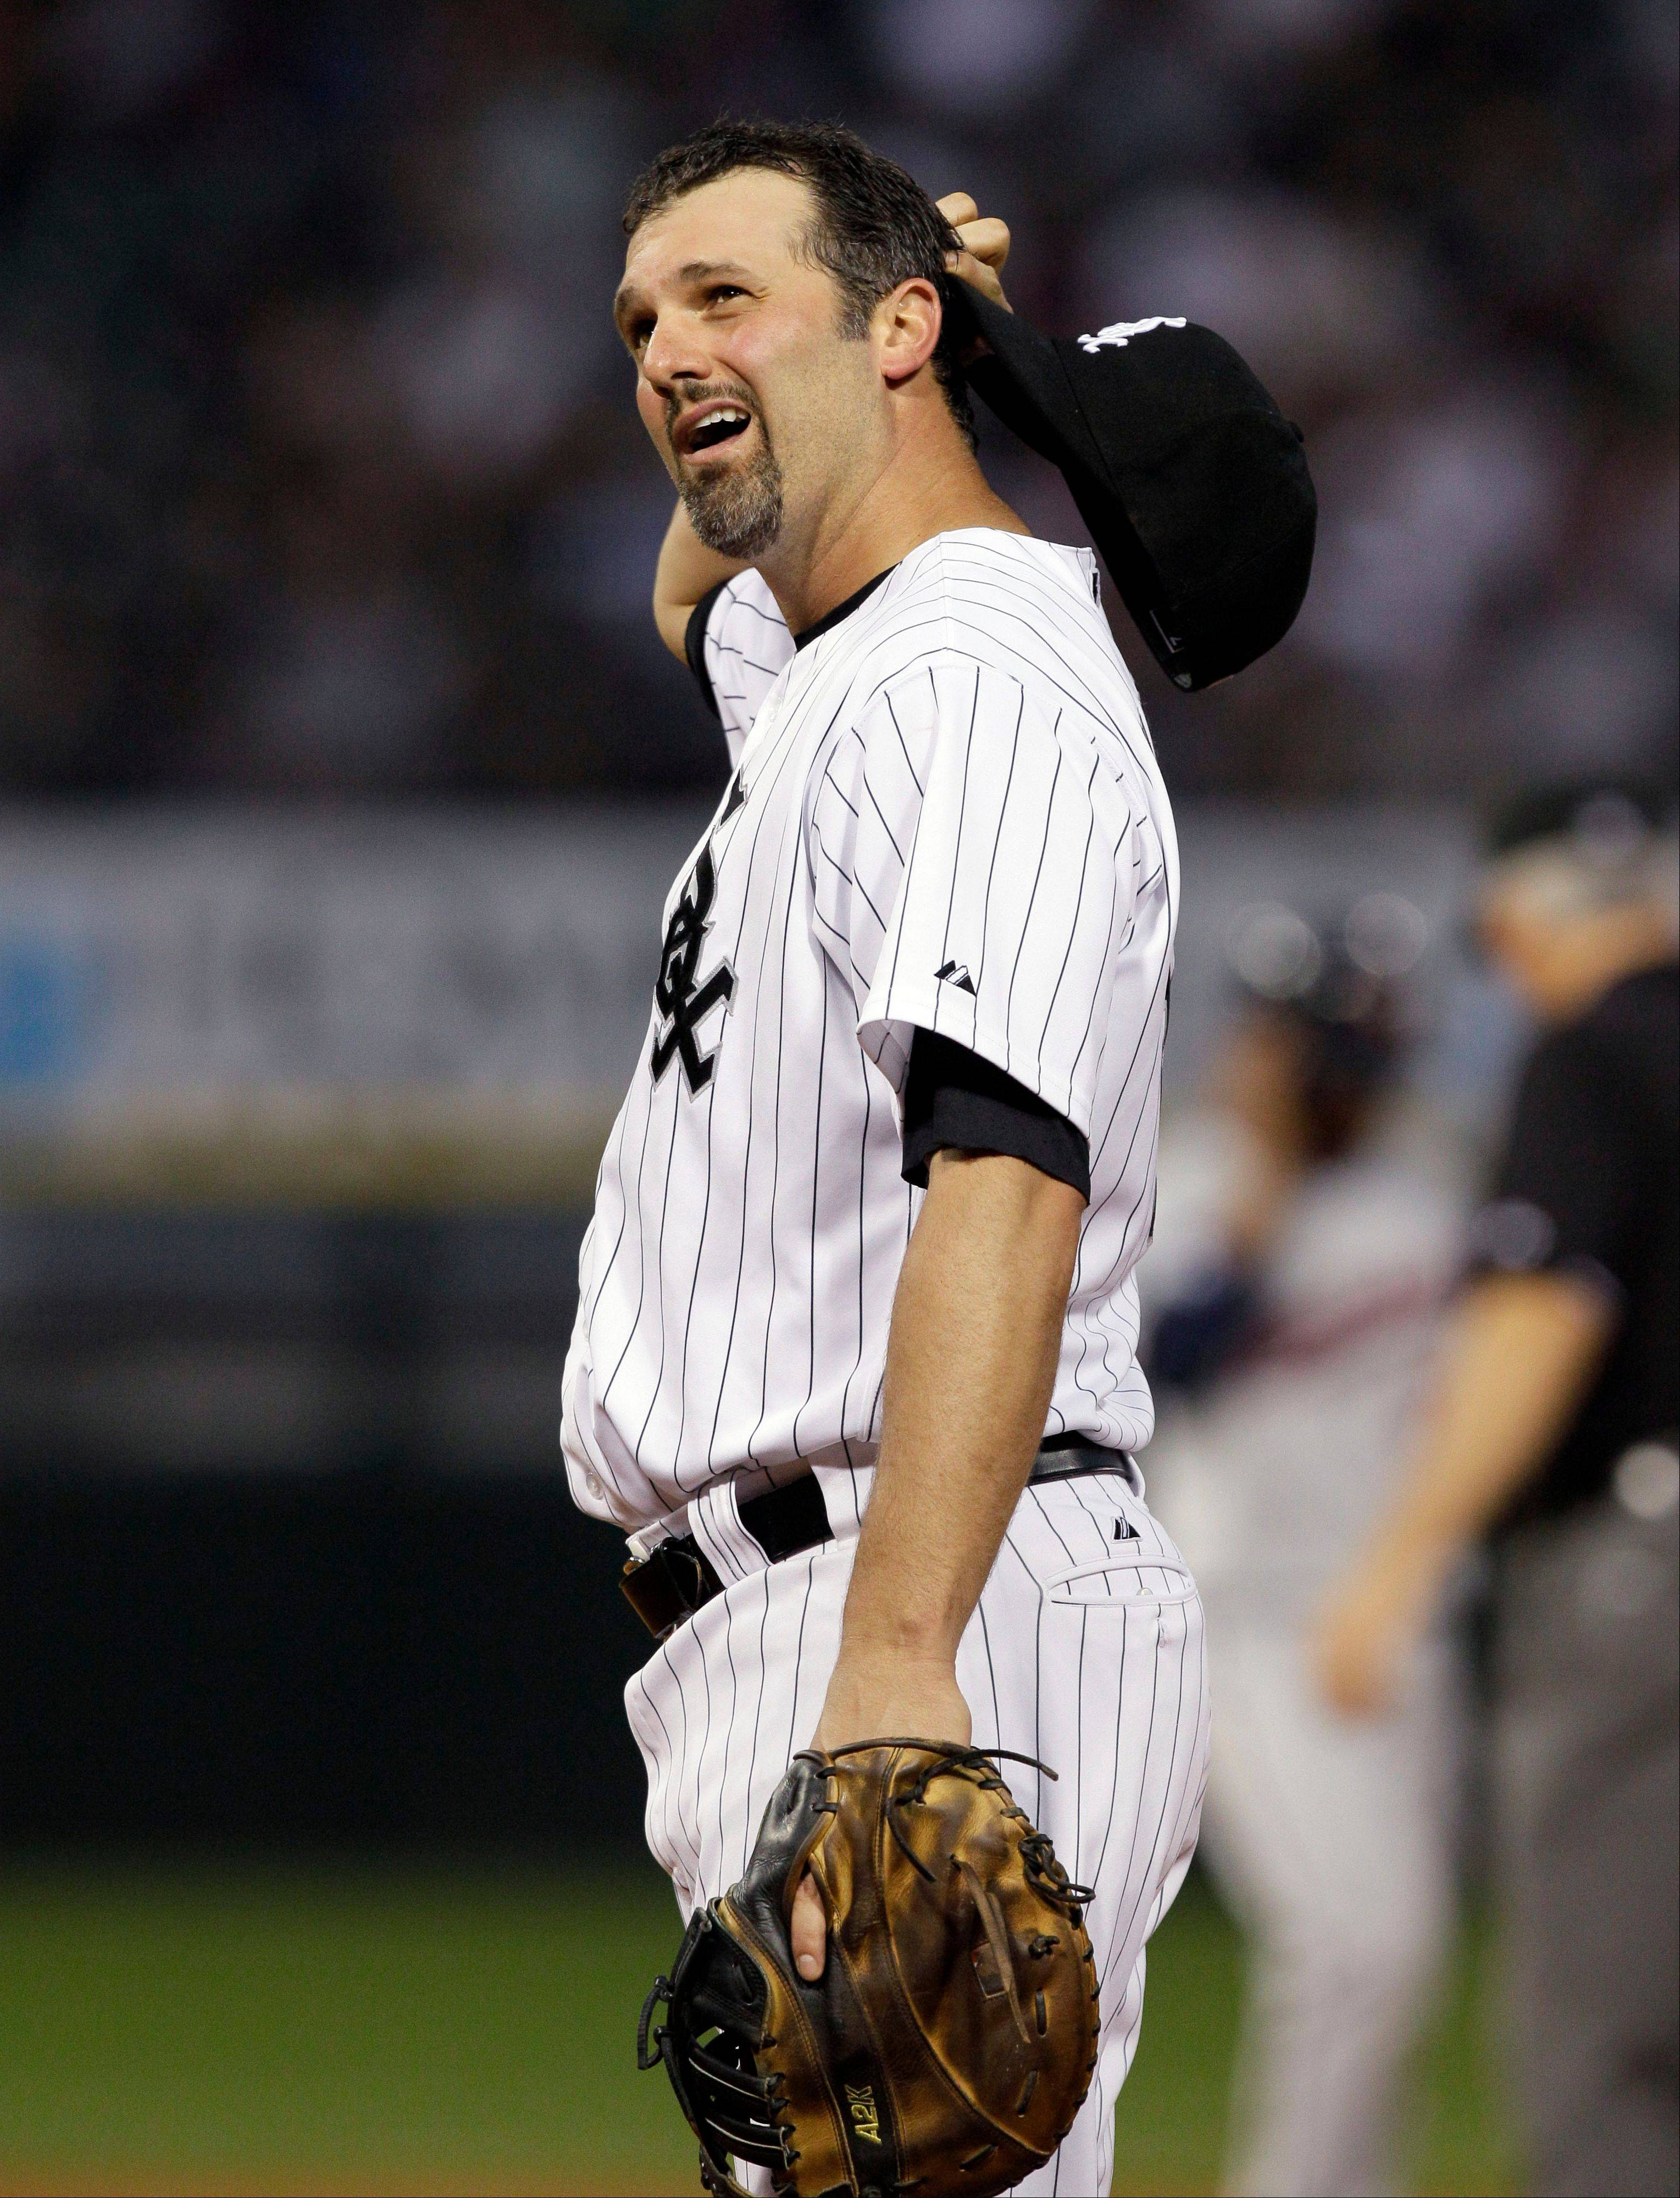 Perhaps Sox first baseman Paul Konerko is trying to figure out how his team hasn't found a way to beat the Twins this season. The Twinkies are 6-0 against the Sox this year.